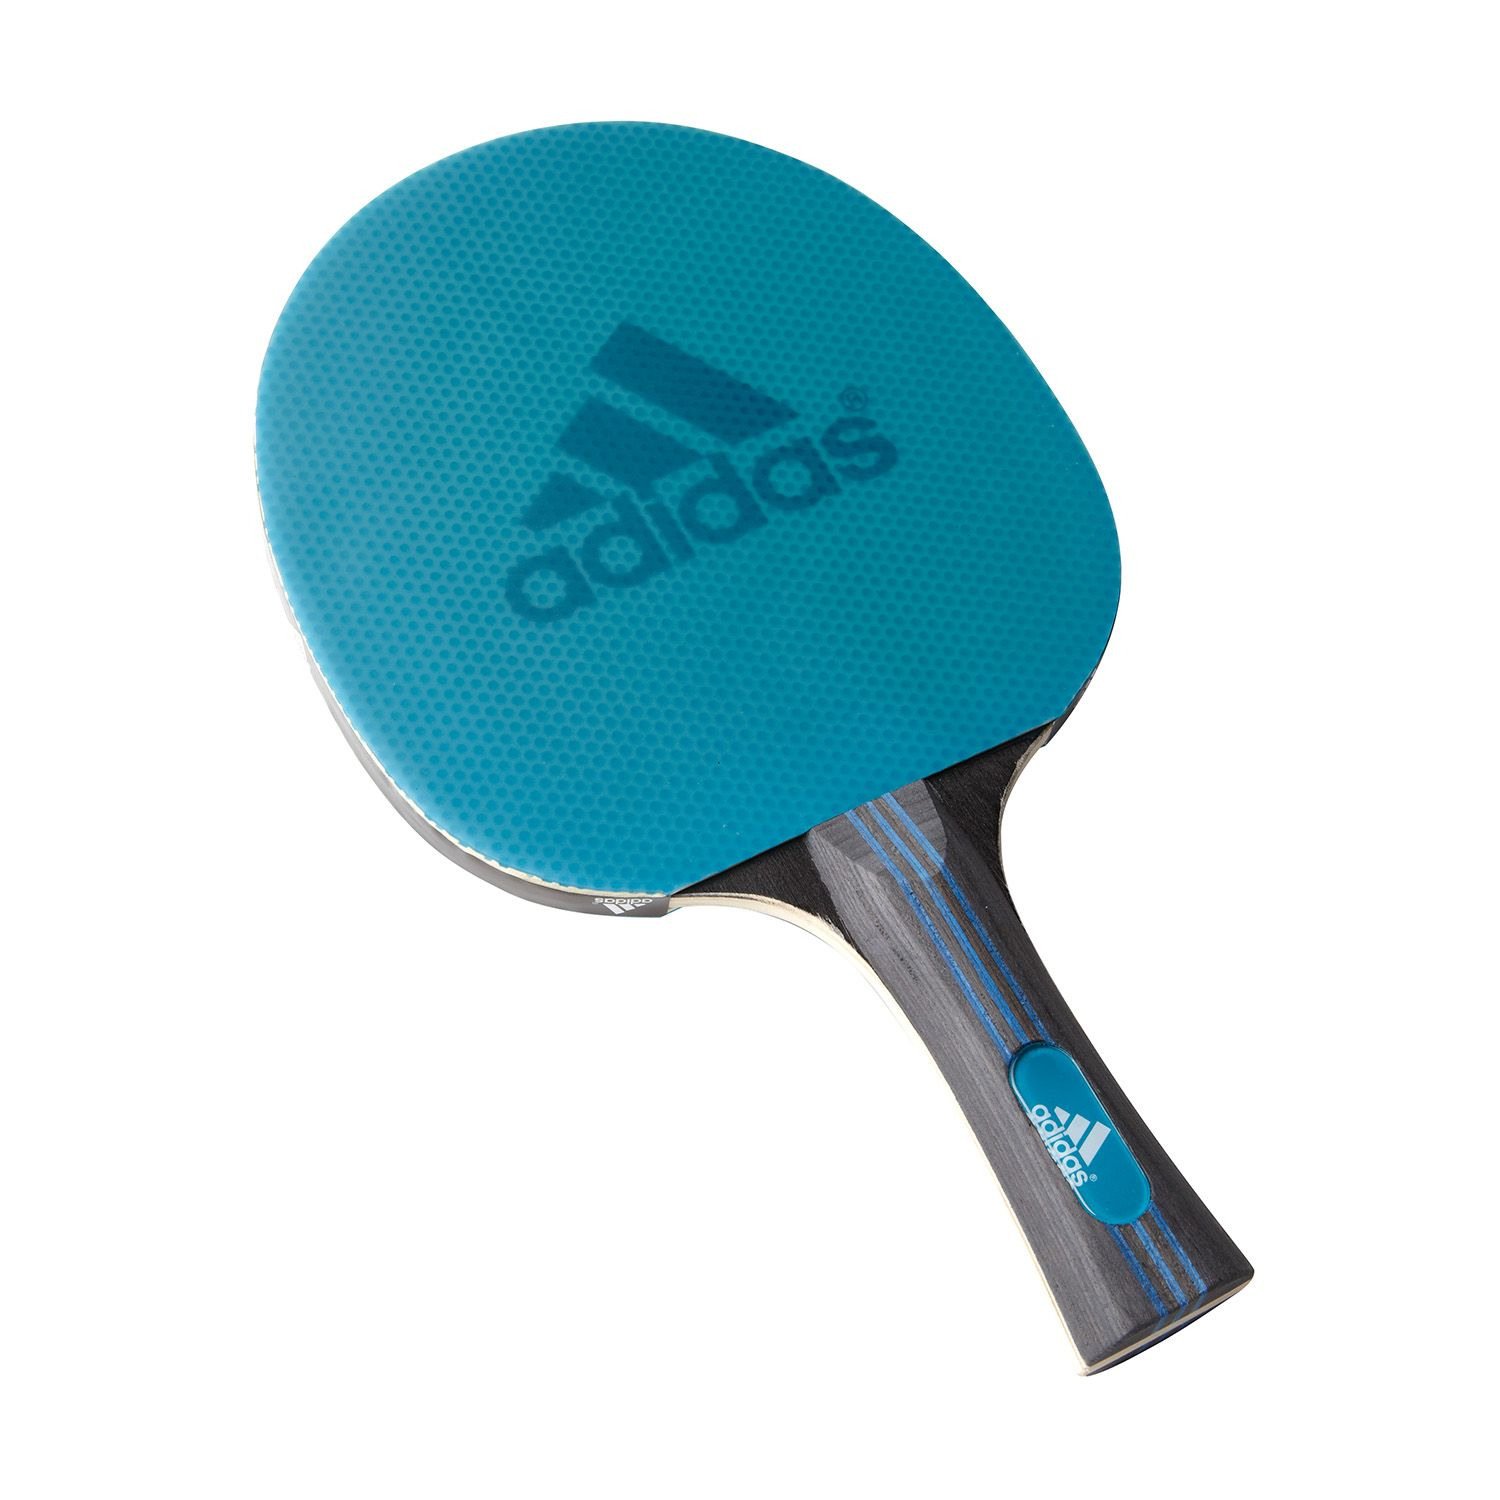 Adidas laser 2 0 ice table tennis bat for Table tennis